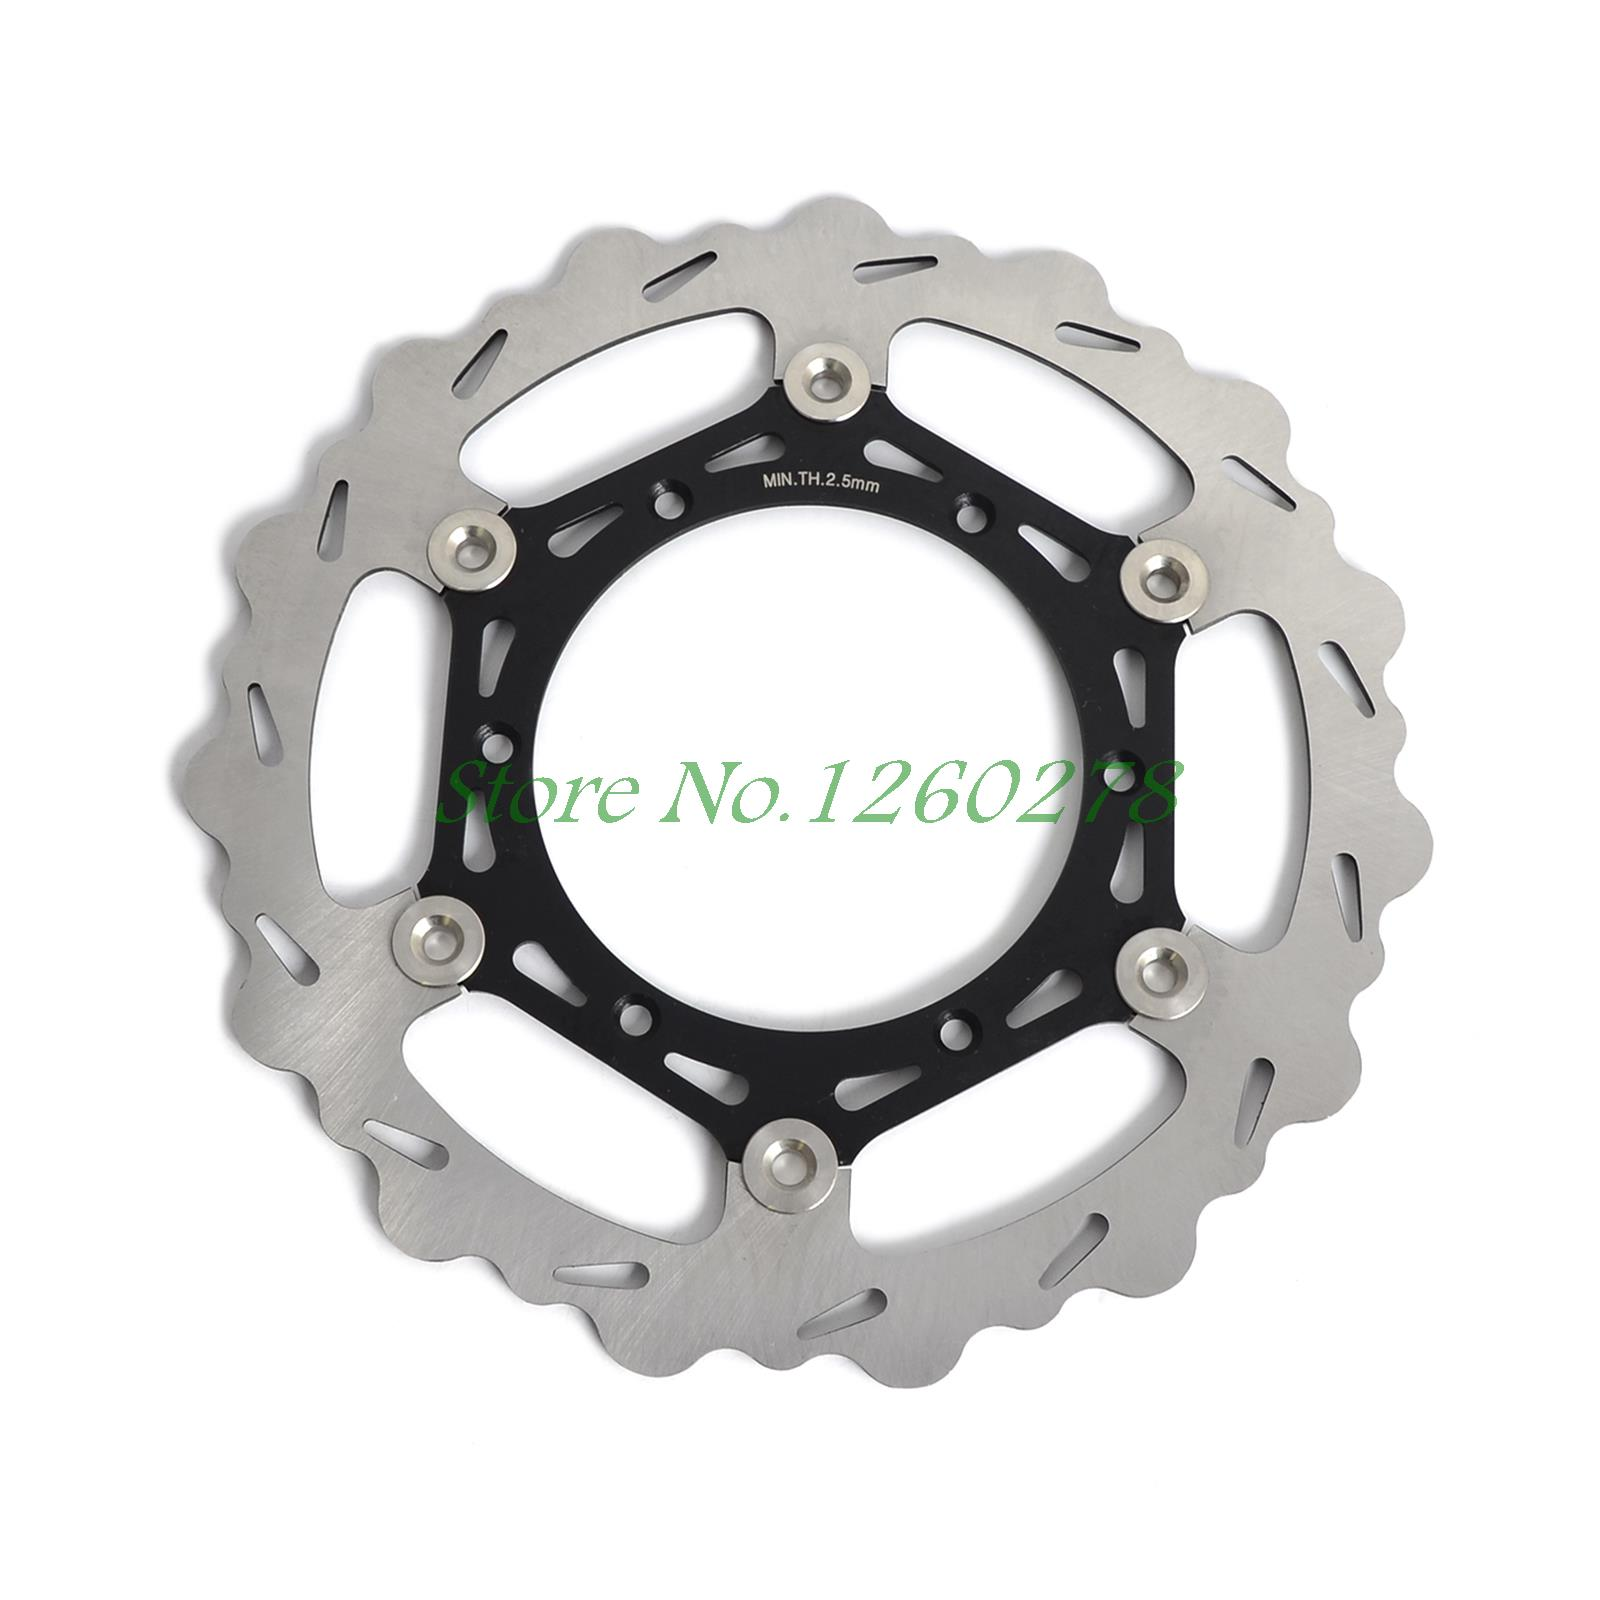 Motorcycle 270mm Oversize Front MX Brake Disc Rotor For Yamaha WR125 250 WR250F/400/426F WR450F Motorbike Front MX Brake Disc high quality 270mm oversize front mx brake disc rotor for yamaha yz125 yz250 yz250f yz450f motorbike front mx brake disc